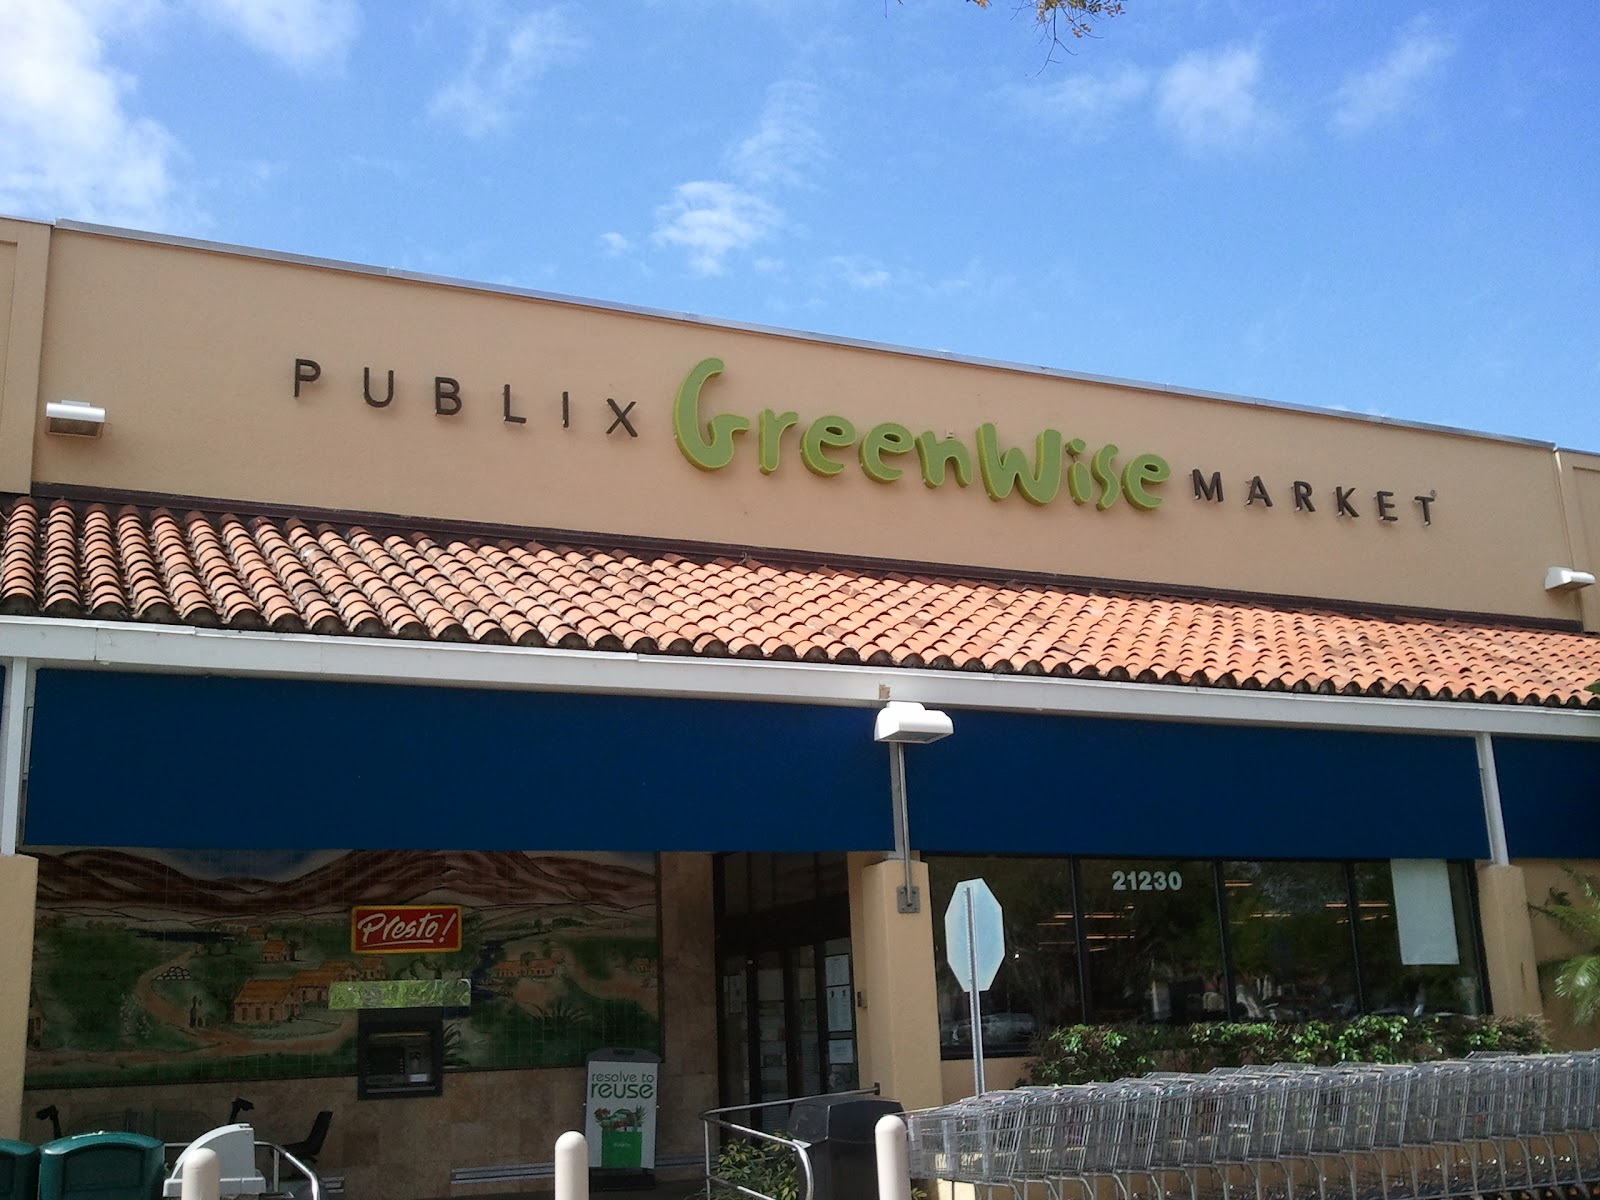 Since Many Of You Are Publix Fans But Donu0027t Live Near A GreenWise Market, I  Thought Iu0027d Give You A Tour. For Those Of You Who Live Near One, ...